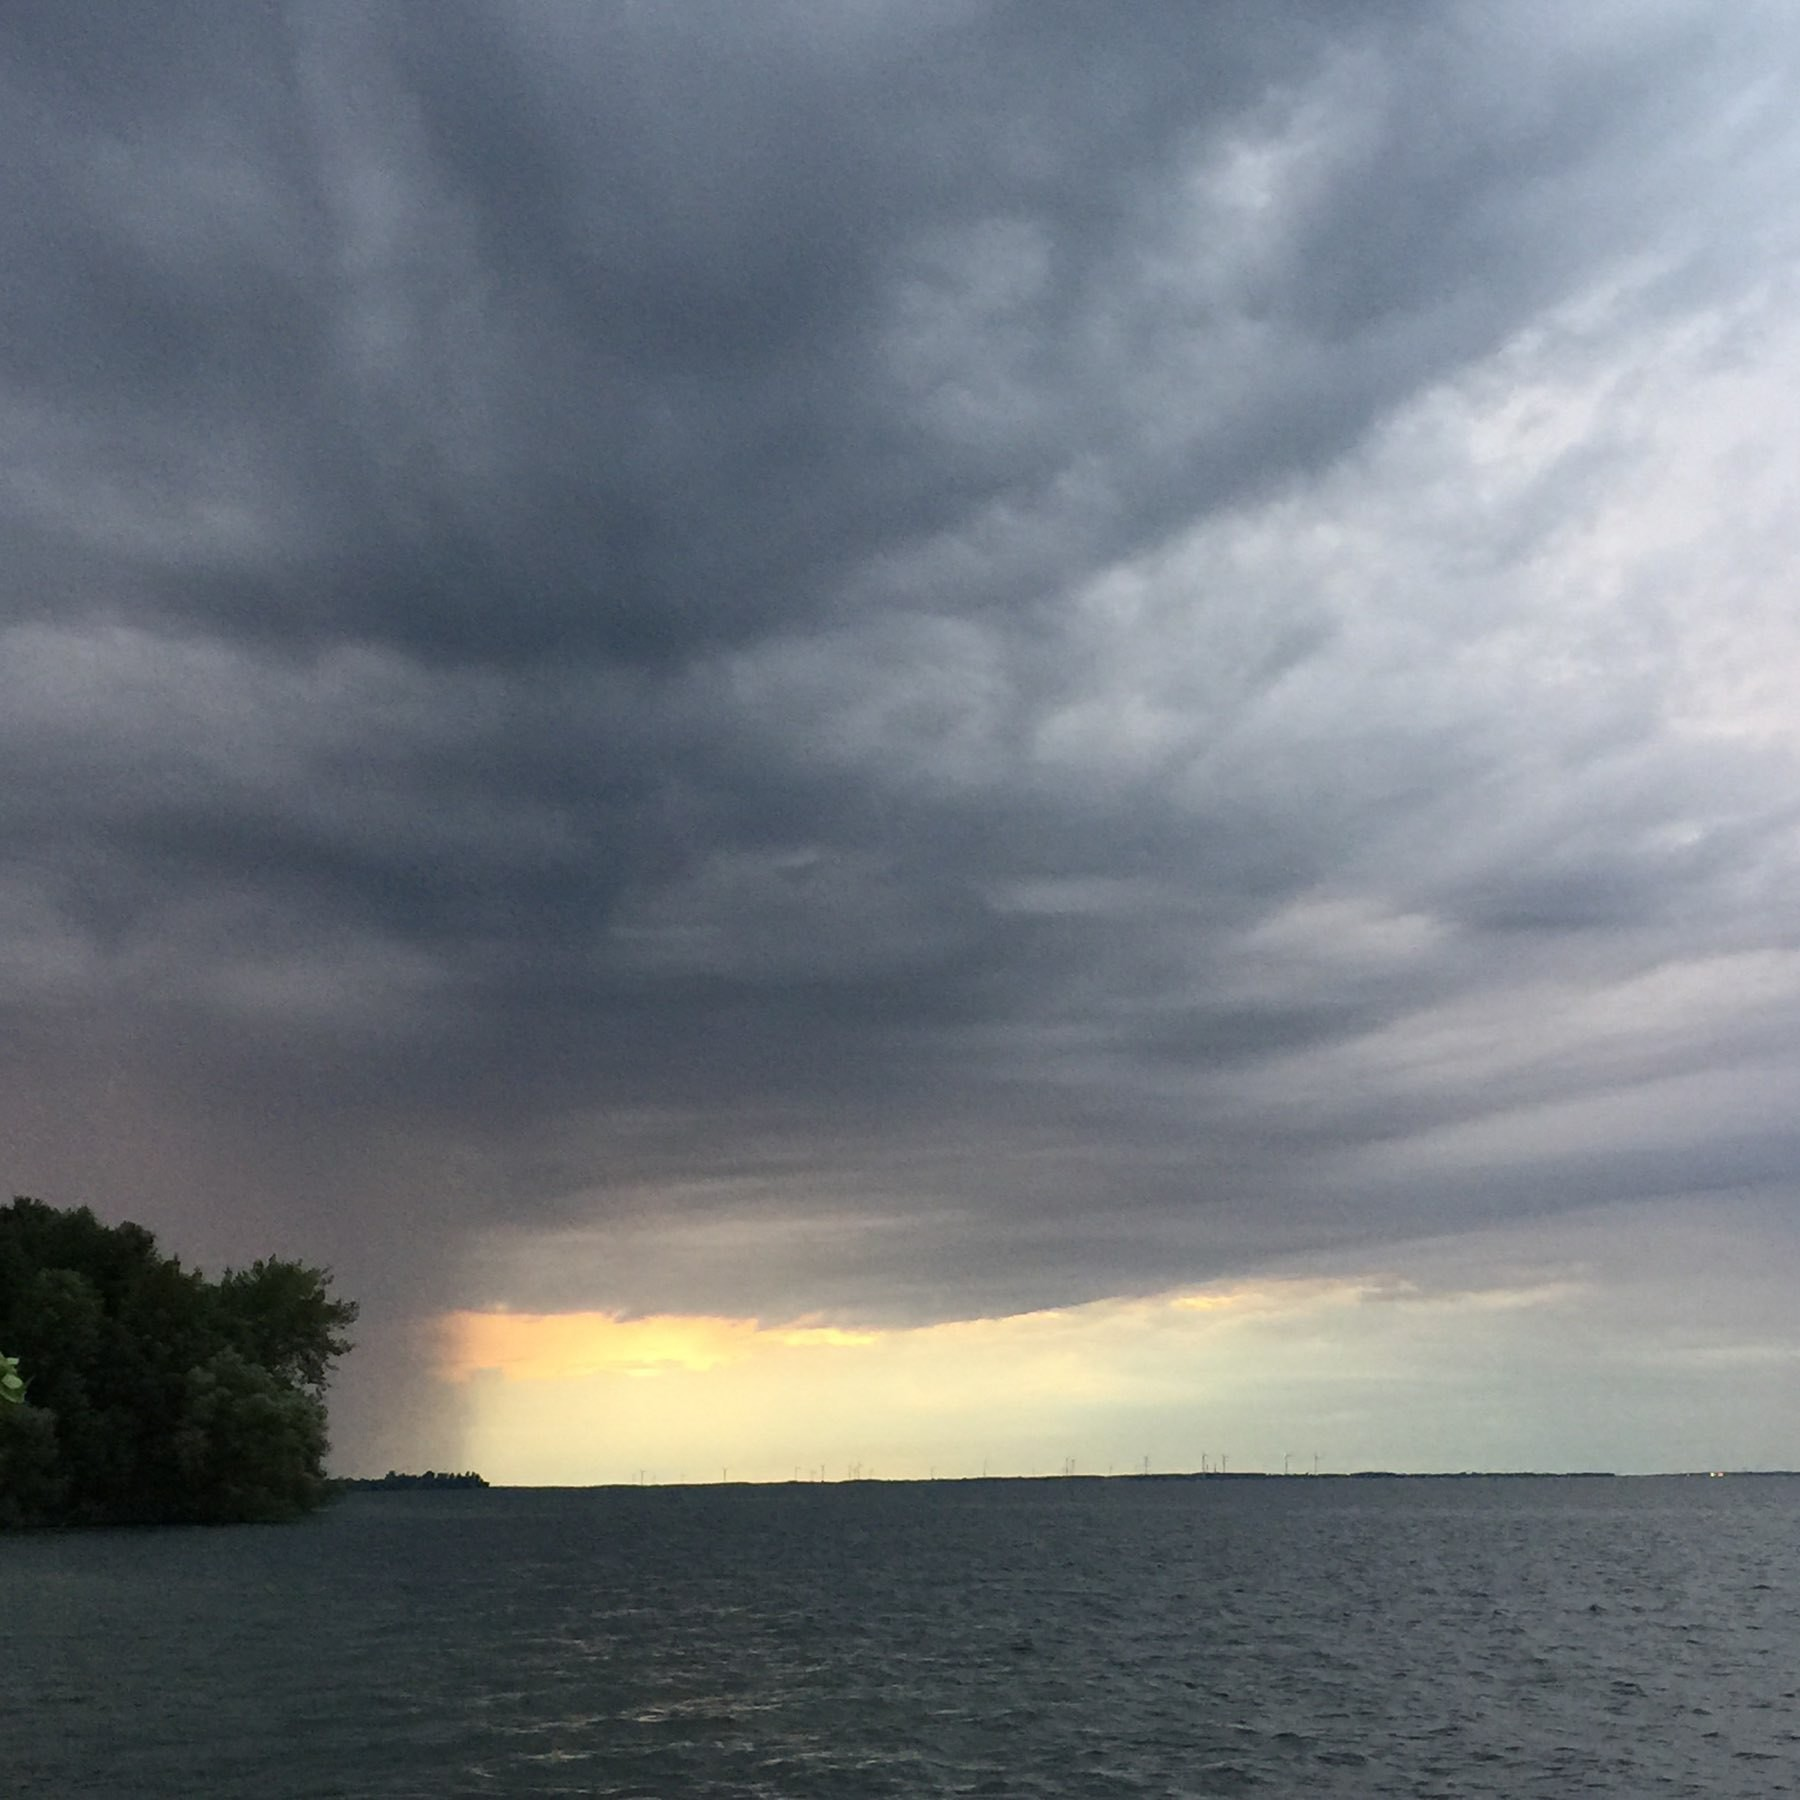 Rain in the distance over Lake Ontario